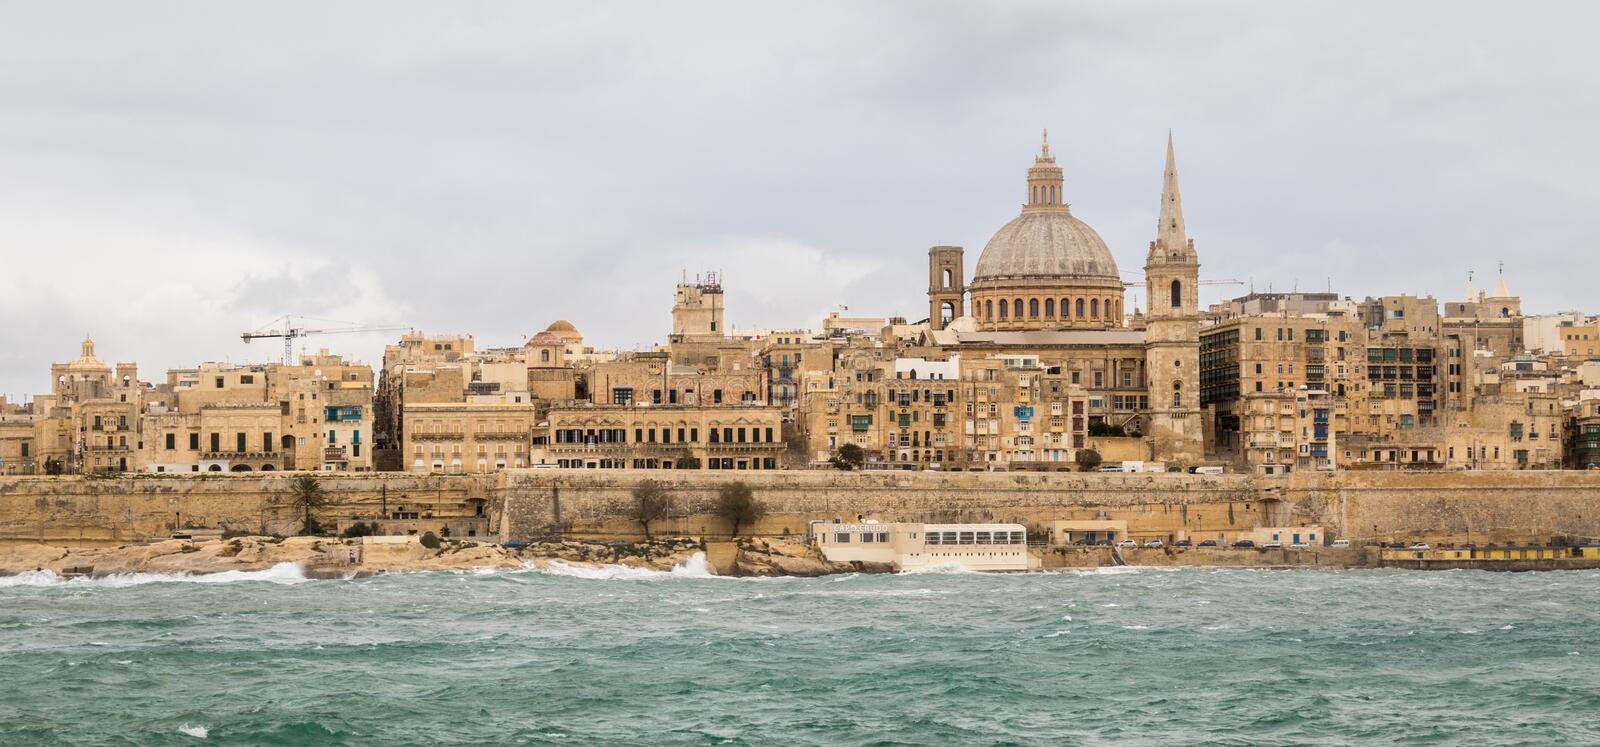 Panoramic View on the Skyline of historical Valletta during a stormy day royalty free stock image